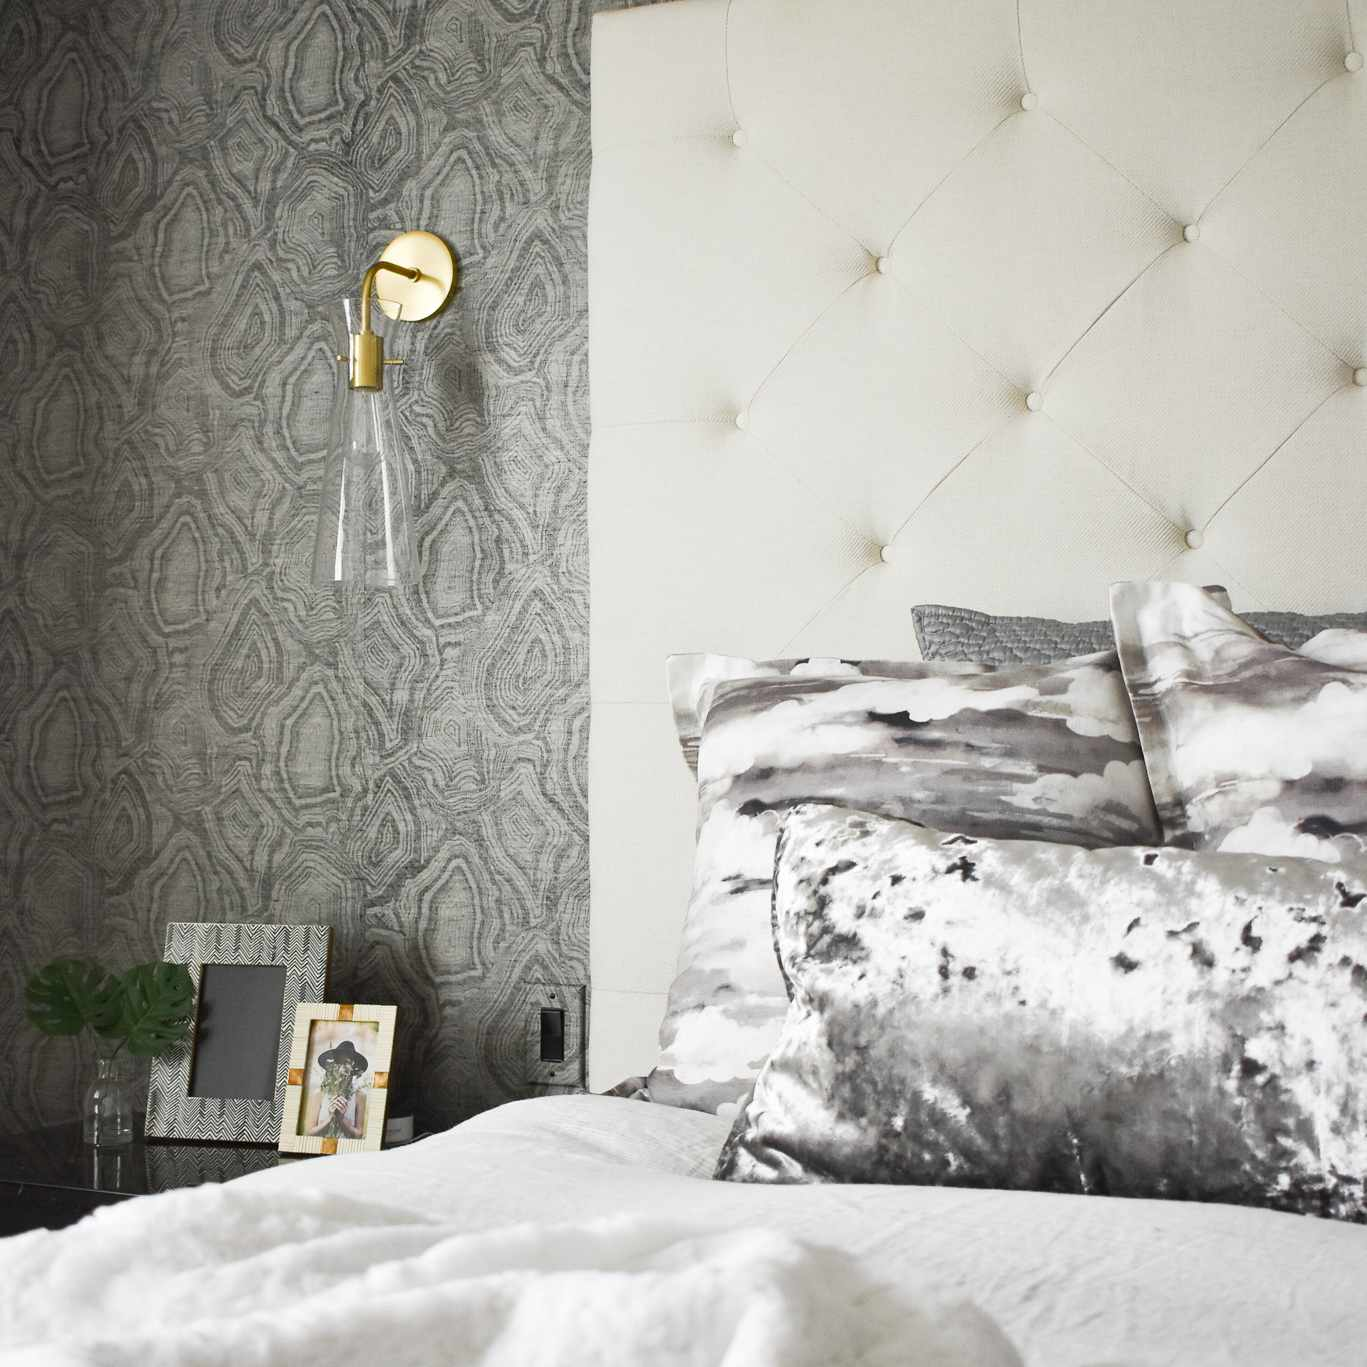 Close-up of bed with gray satin pillows.